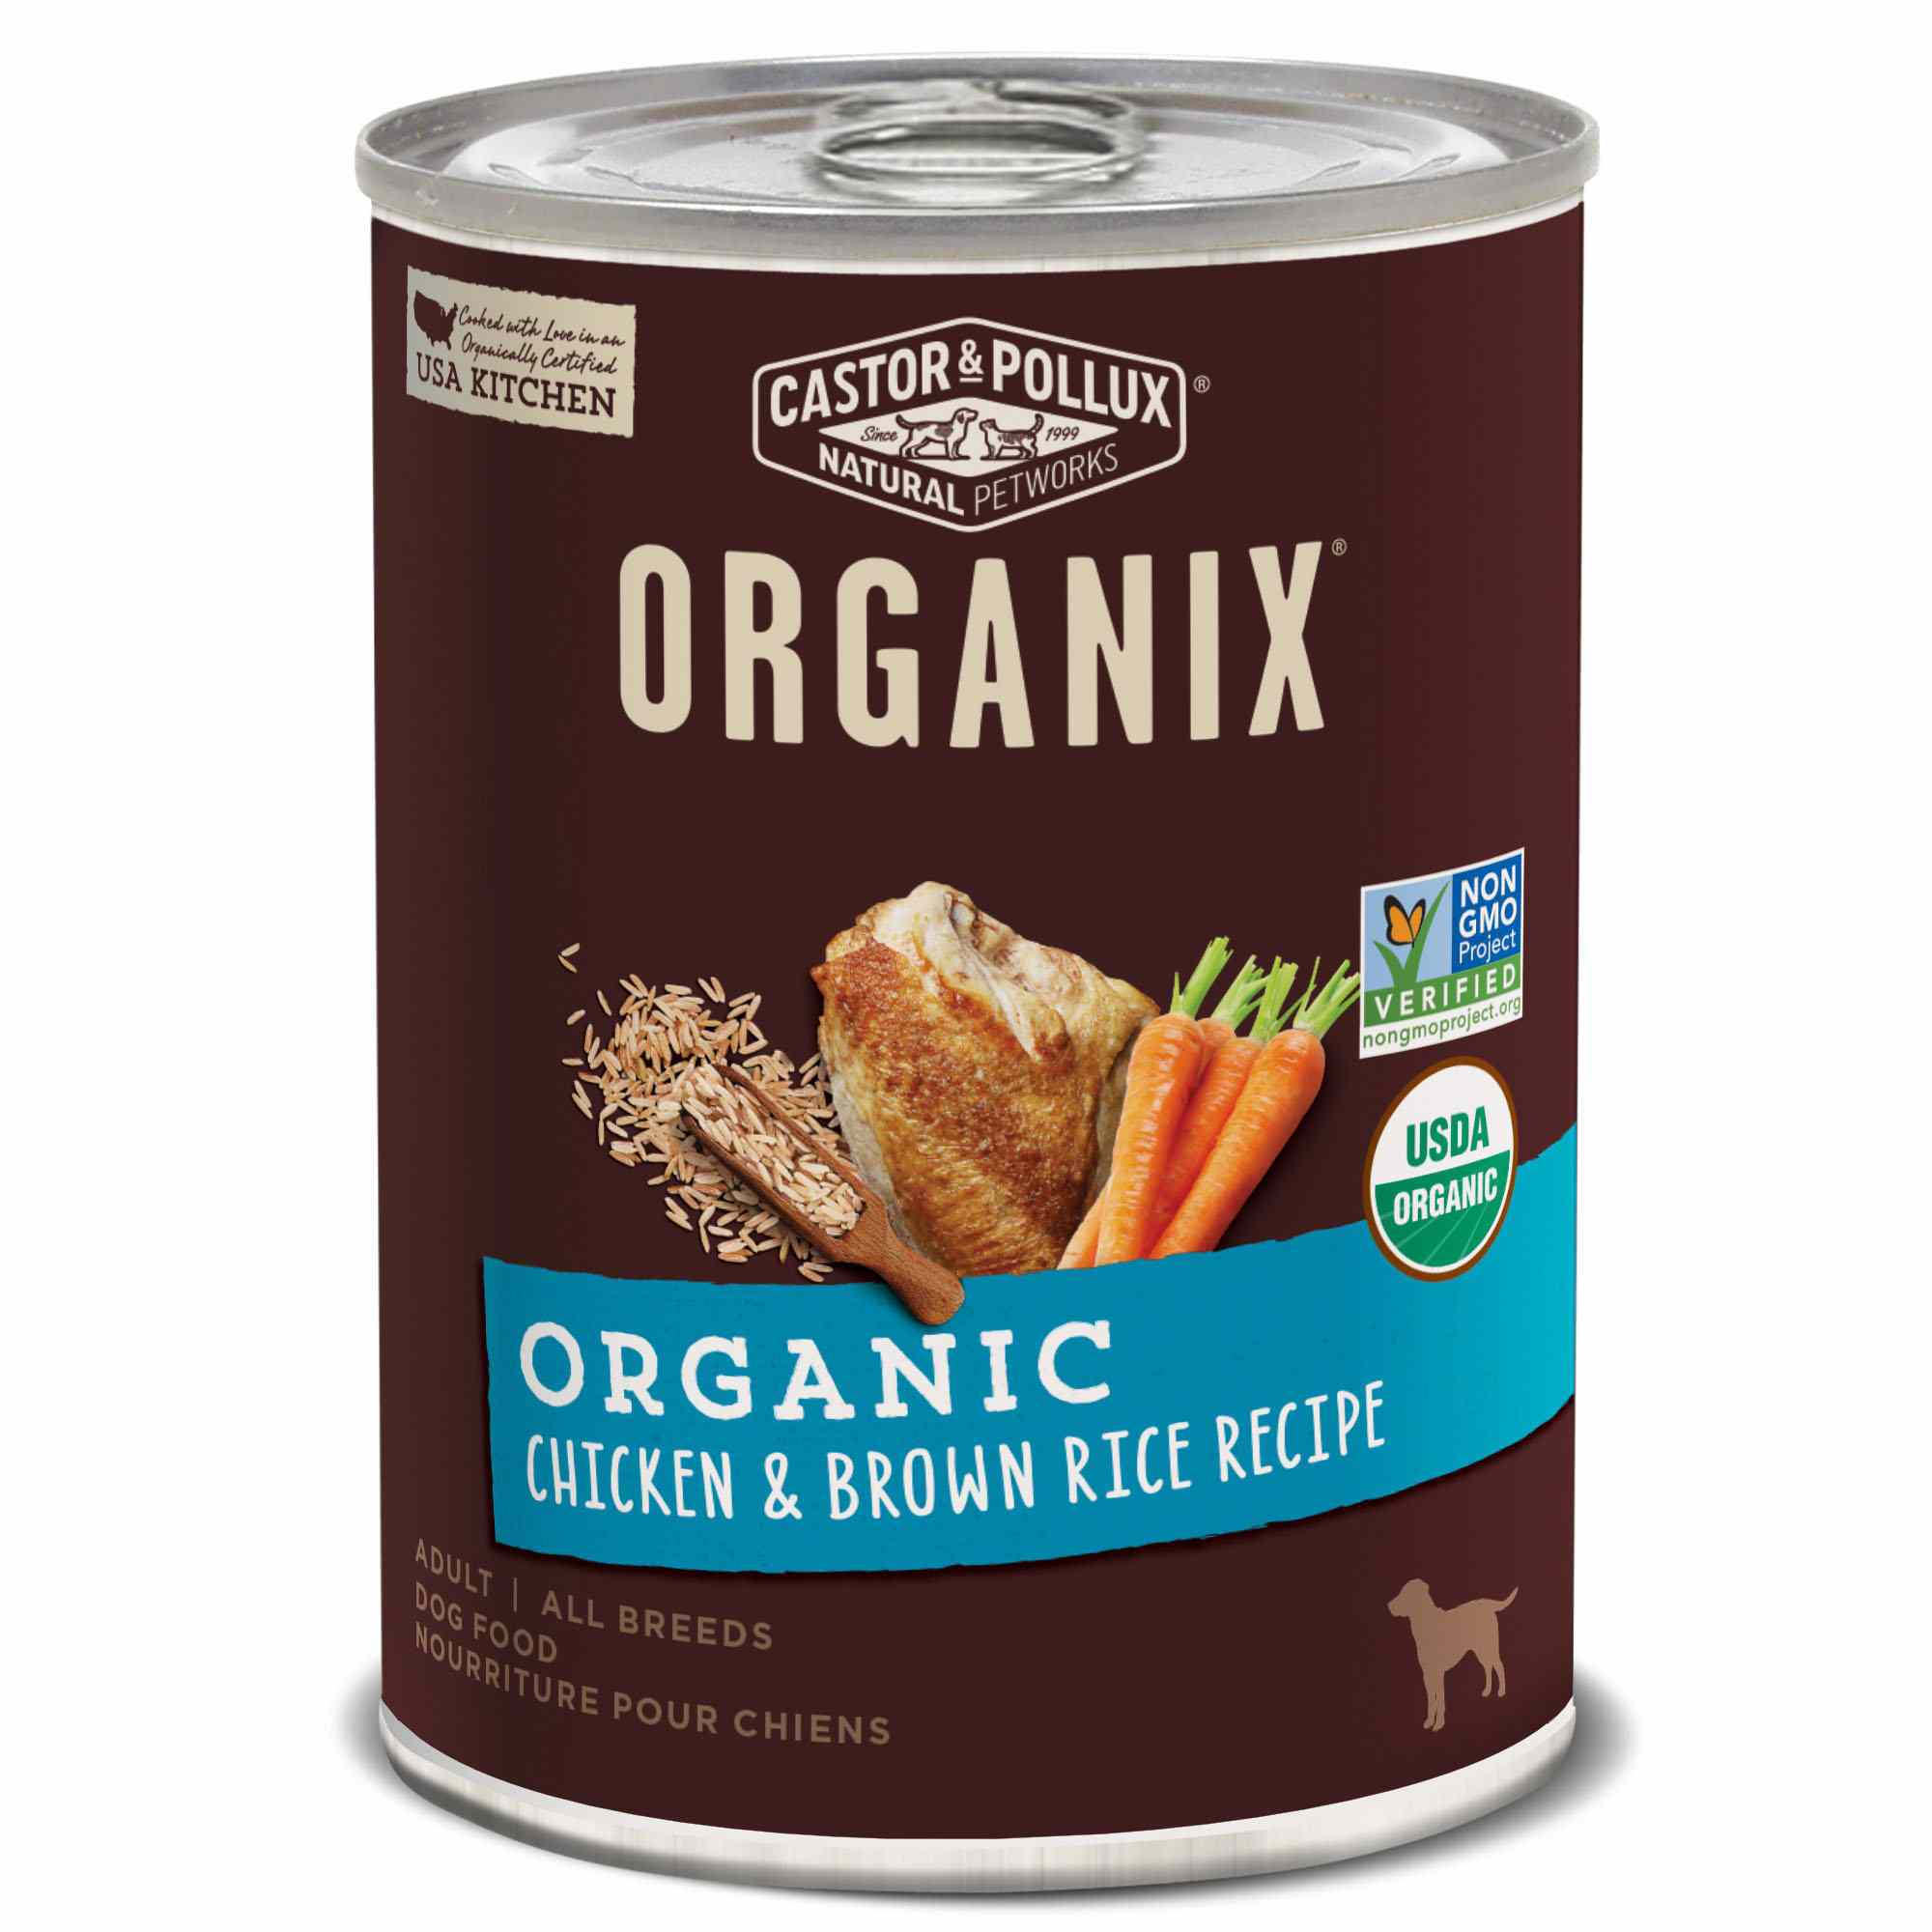 Castor & Pollux Organix Organic Chicken & Brown Rice Recipe Adult Canned Dog Food